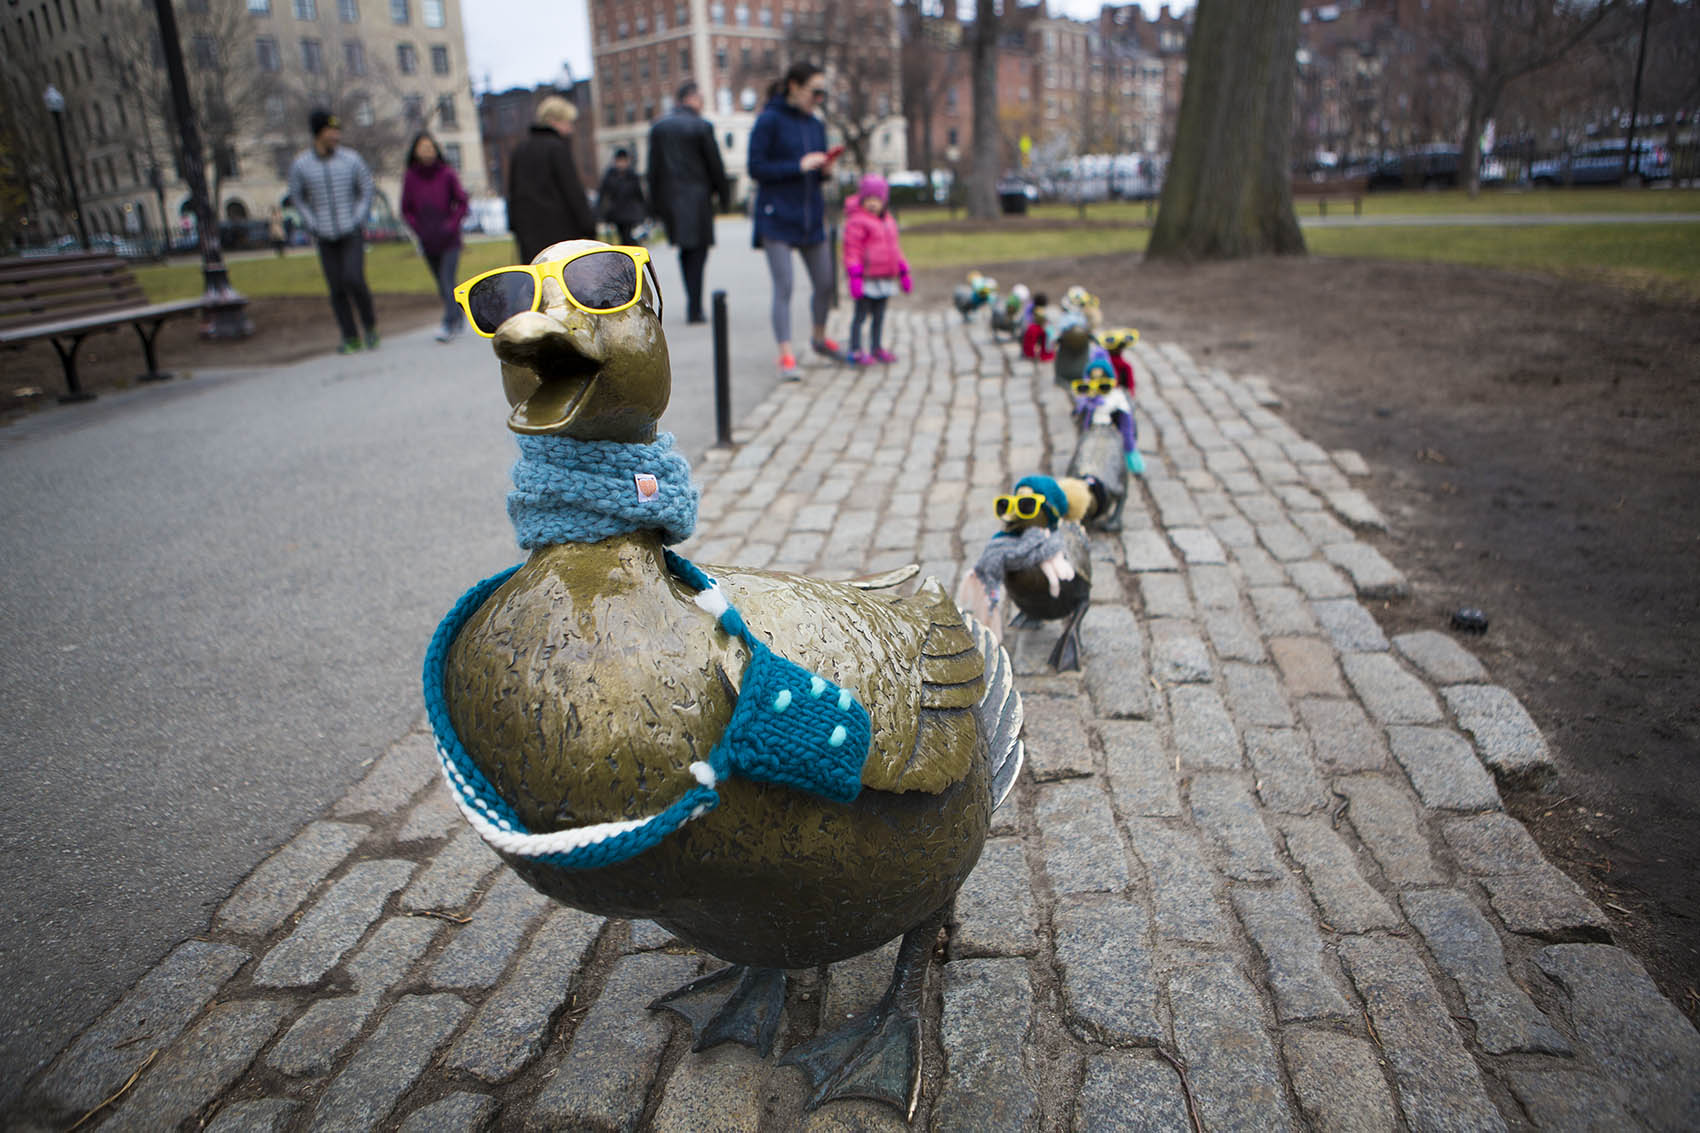 Nancy Schon's Make Way For Ducklings Statues dreassed in winter clothing in The Public Gardens. (Jesse Costa/WBUR)